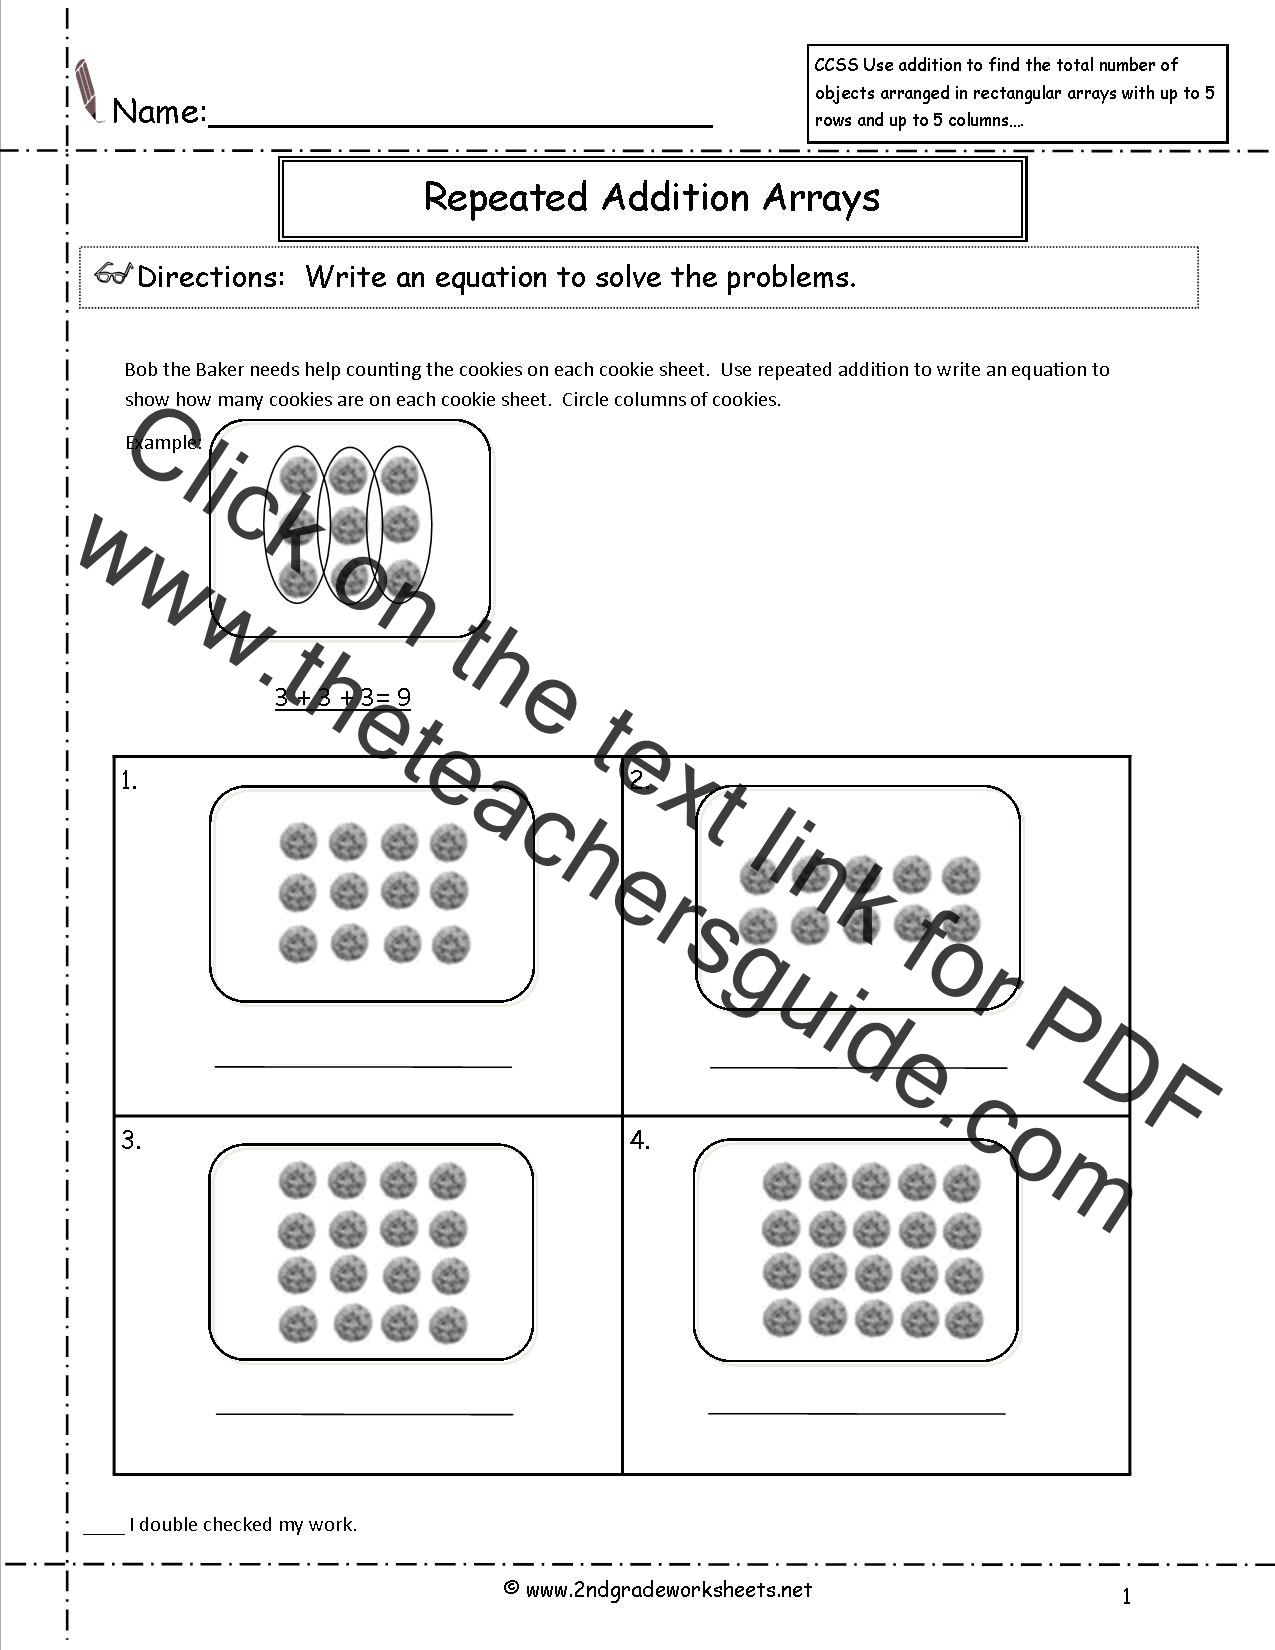 Printables Common Core Standards Worksheets 2nd grade math common core state standards worksheets oa 4 worksheets